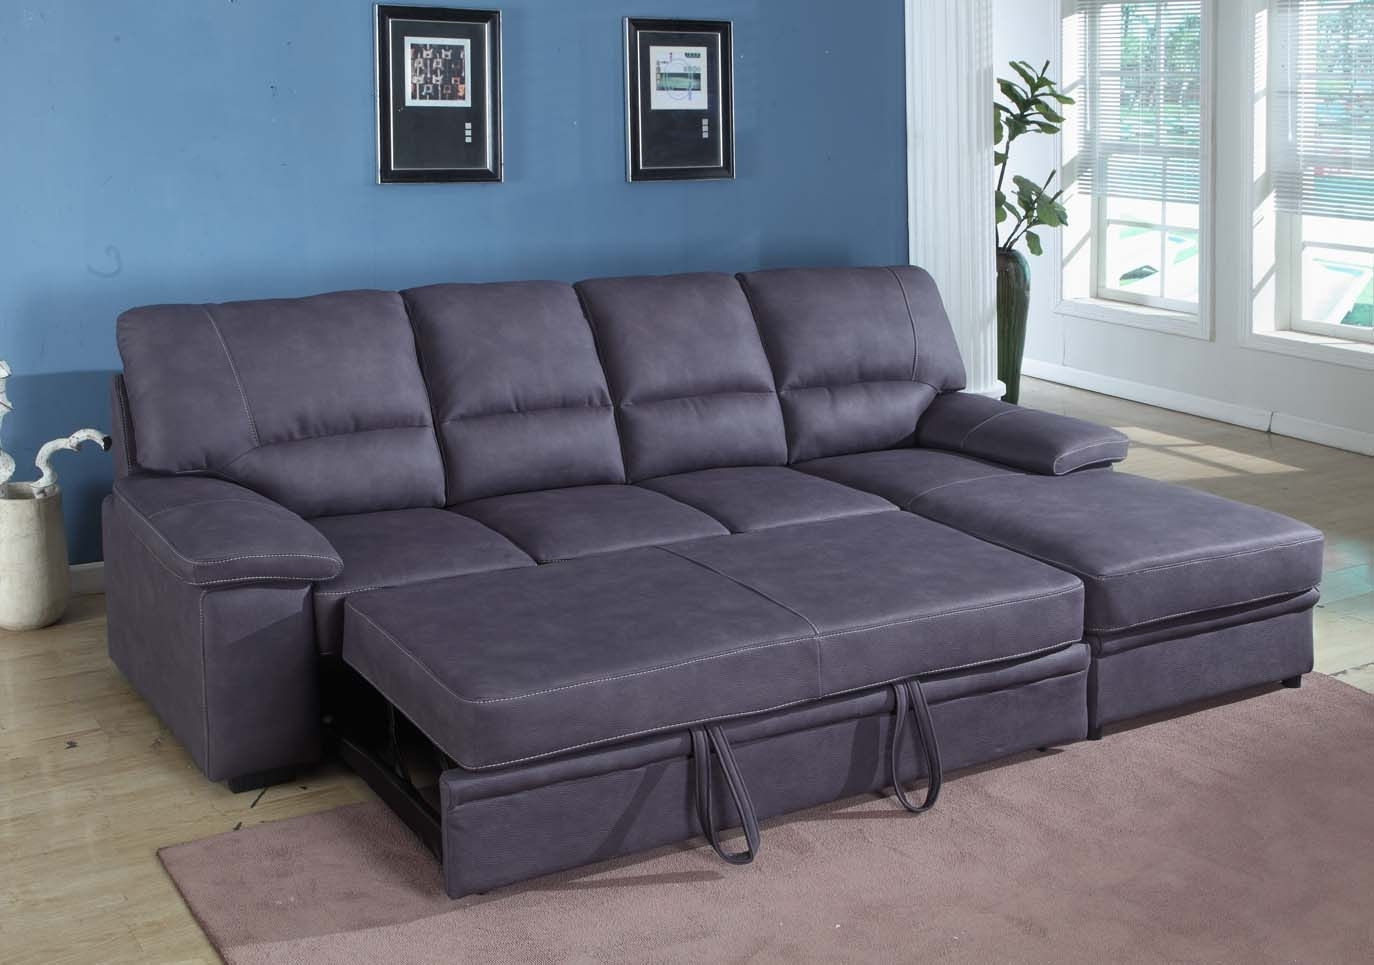 Seating Furniture – Sleeper Sectional Sofa – Pickndecor For Lucy Dark Grey 2 Piece Sleeper Sectionals With Raf Chaise (Image 21 of 25)